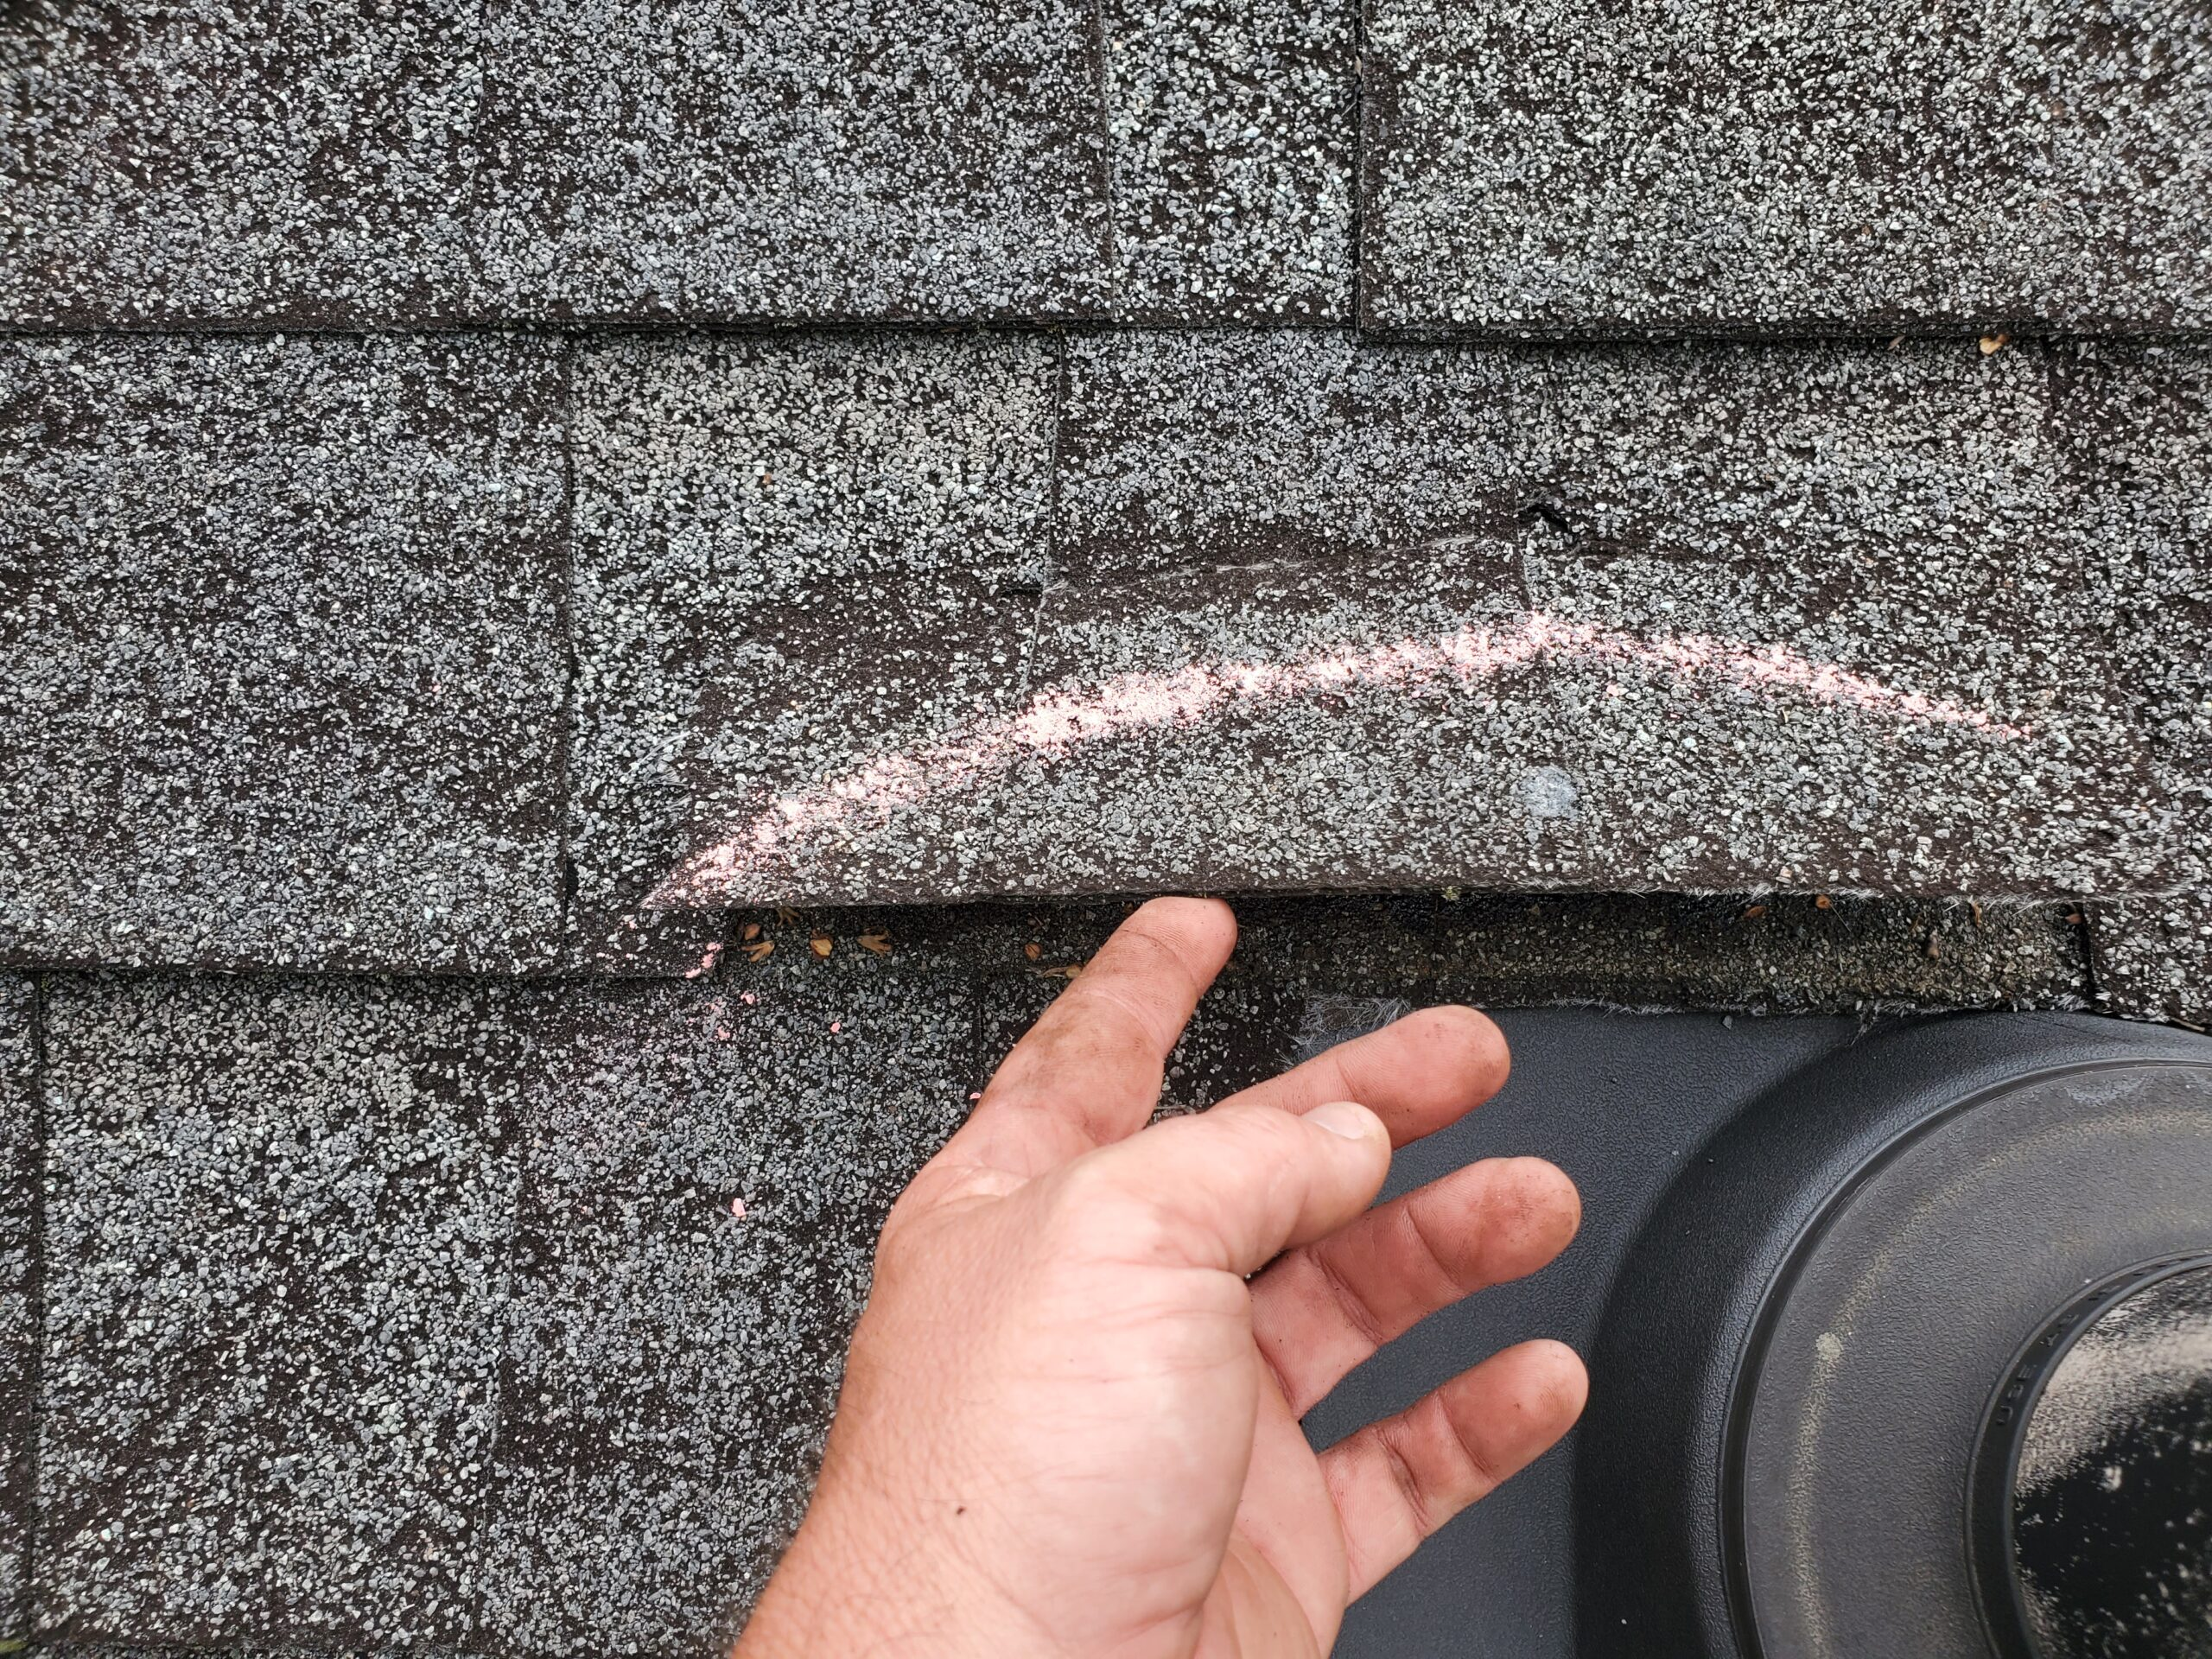 this is a picture of chalk marking a wind damaged shingle and someone lifting this shingle up